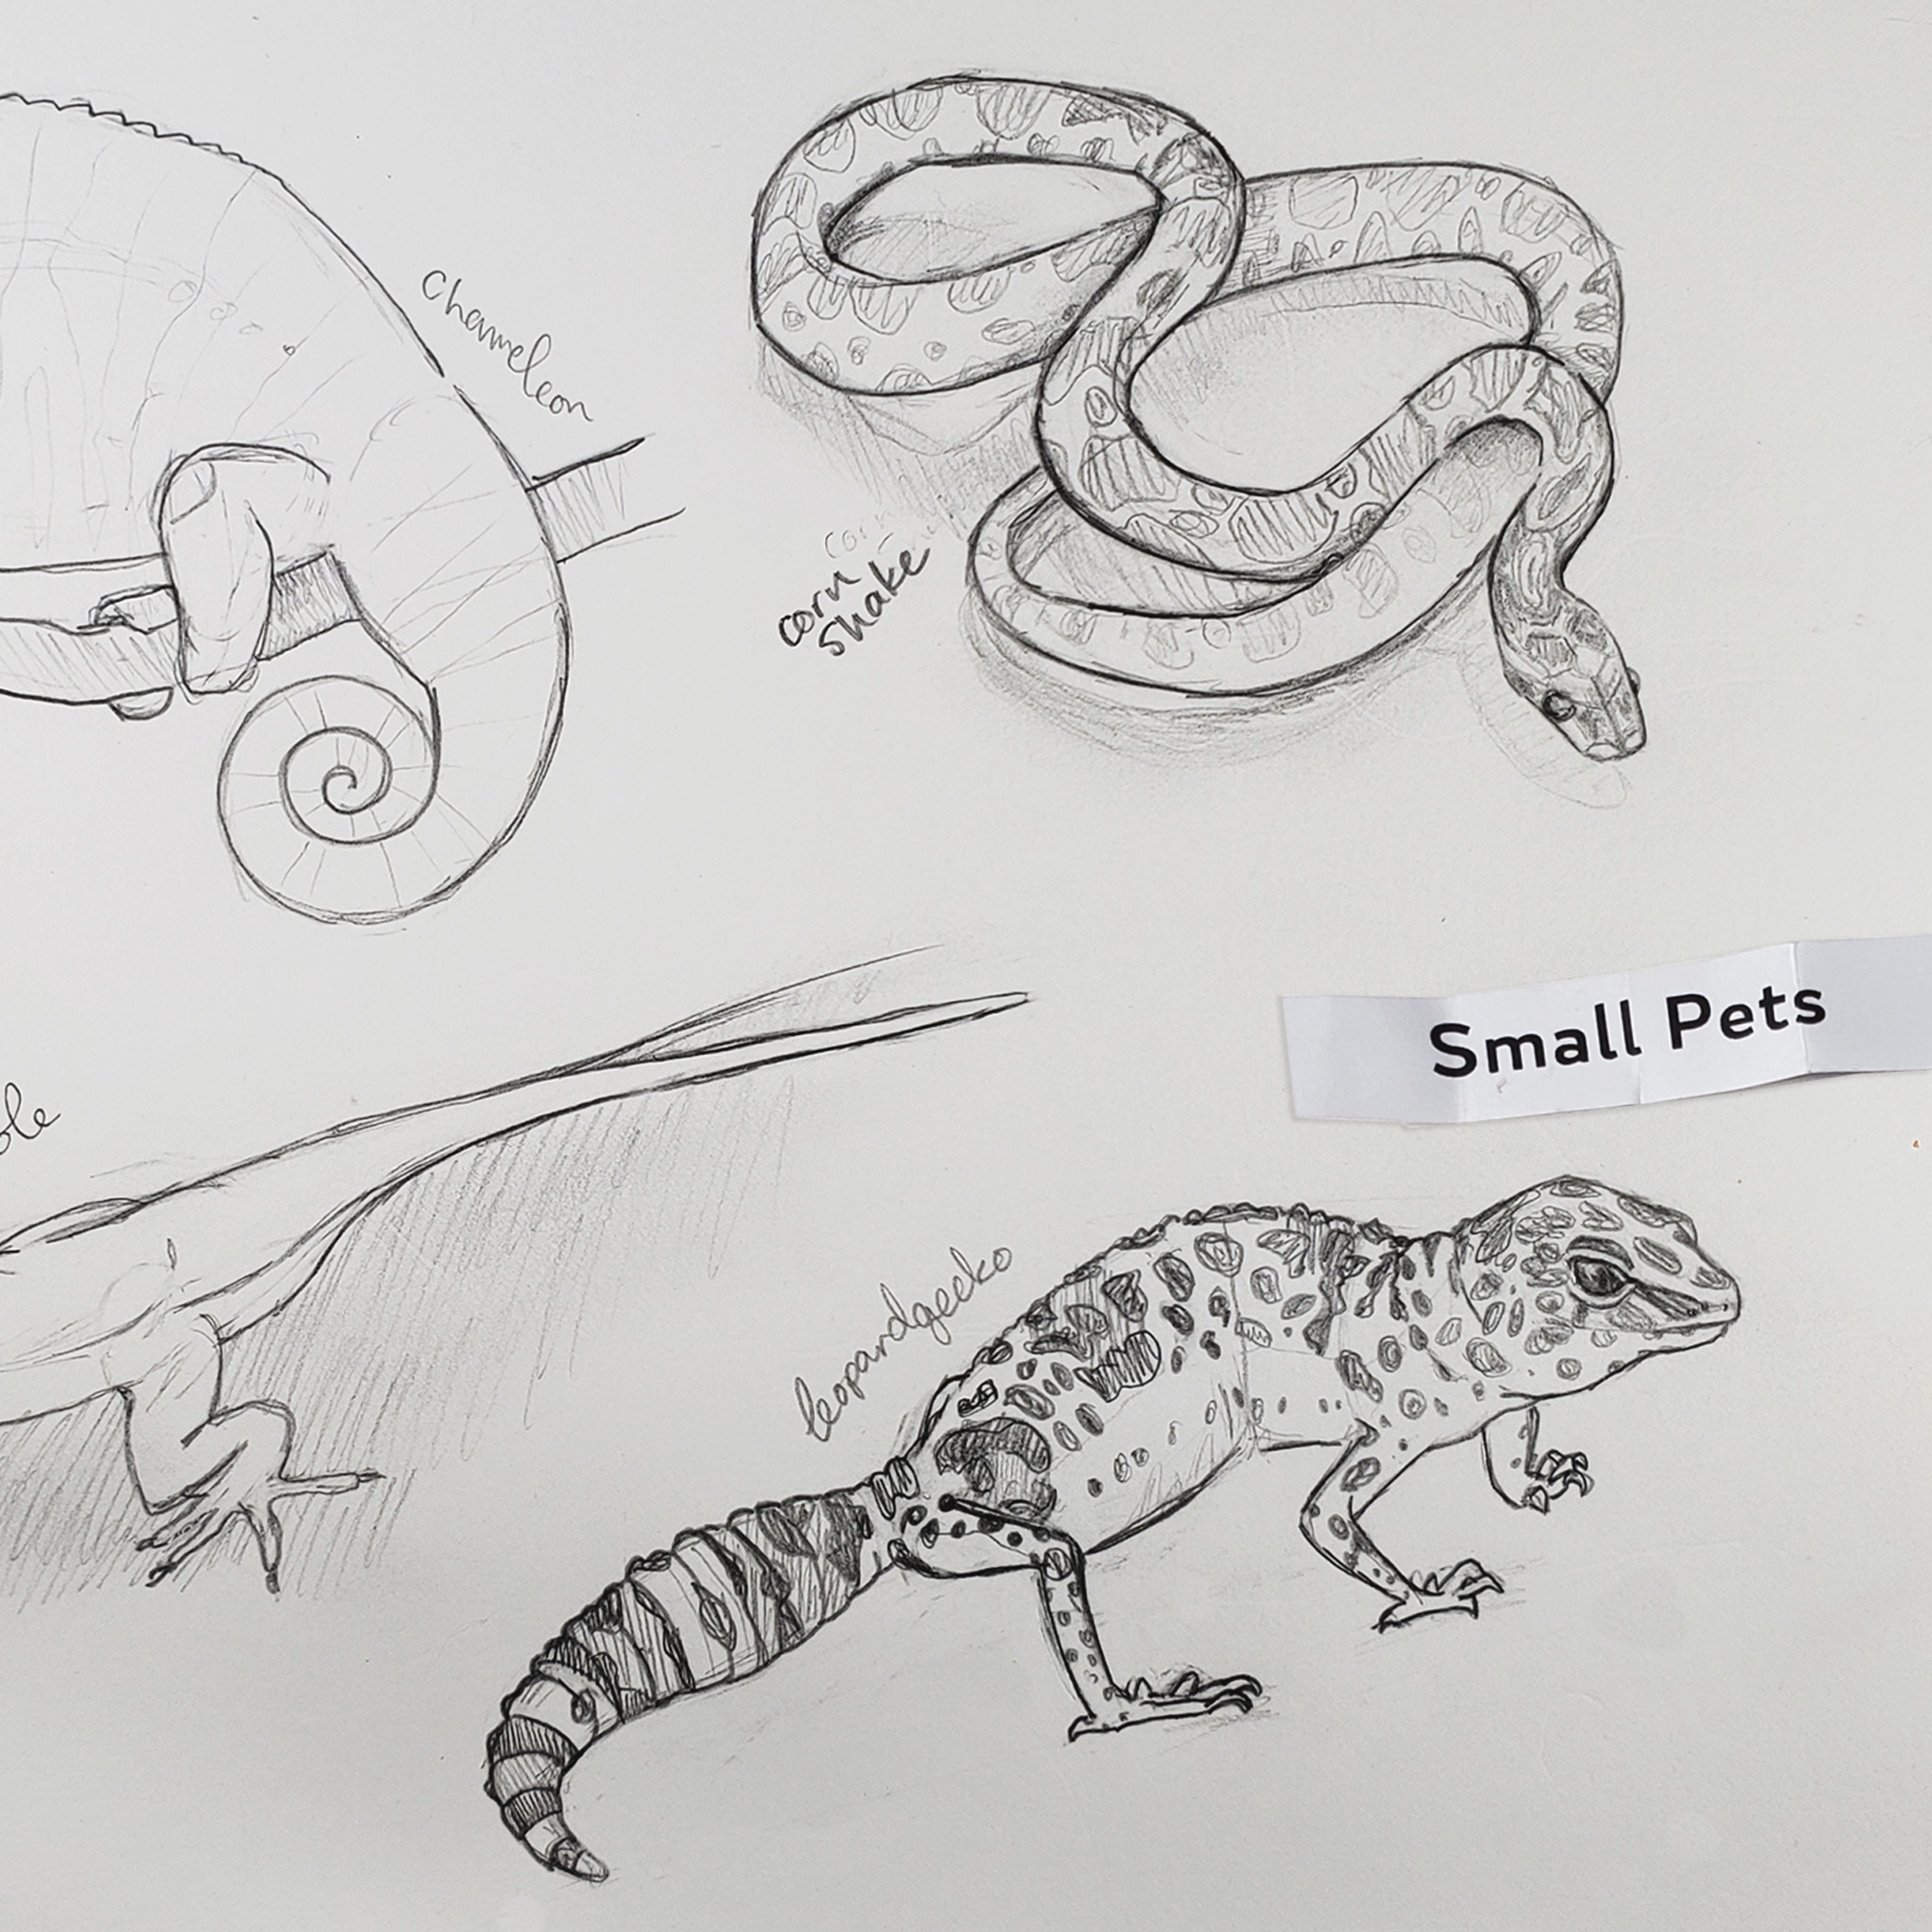 Daily Draw: Small Reptile Pets